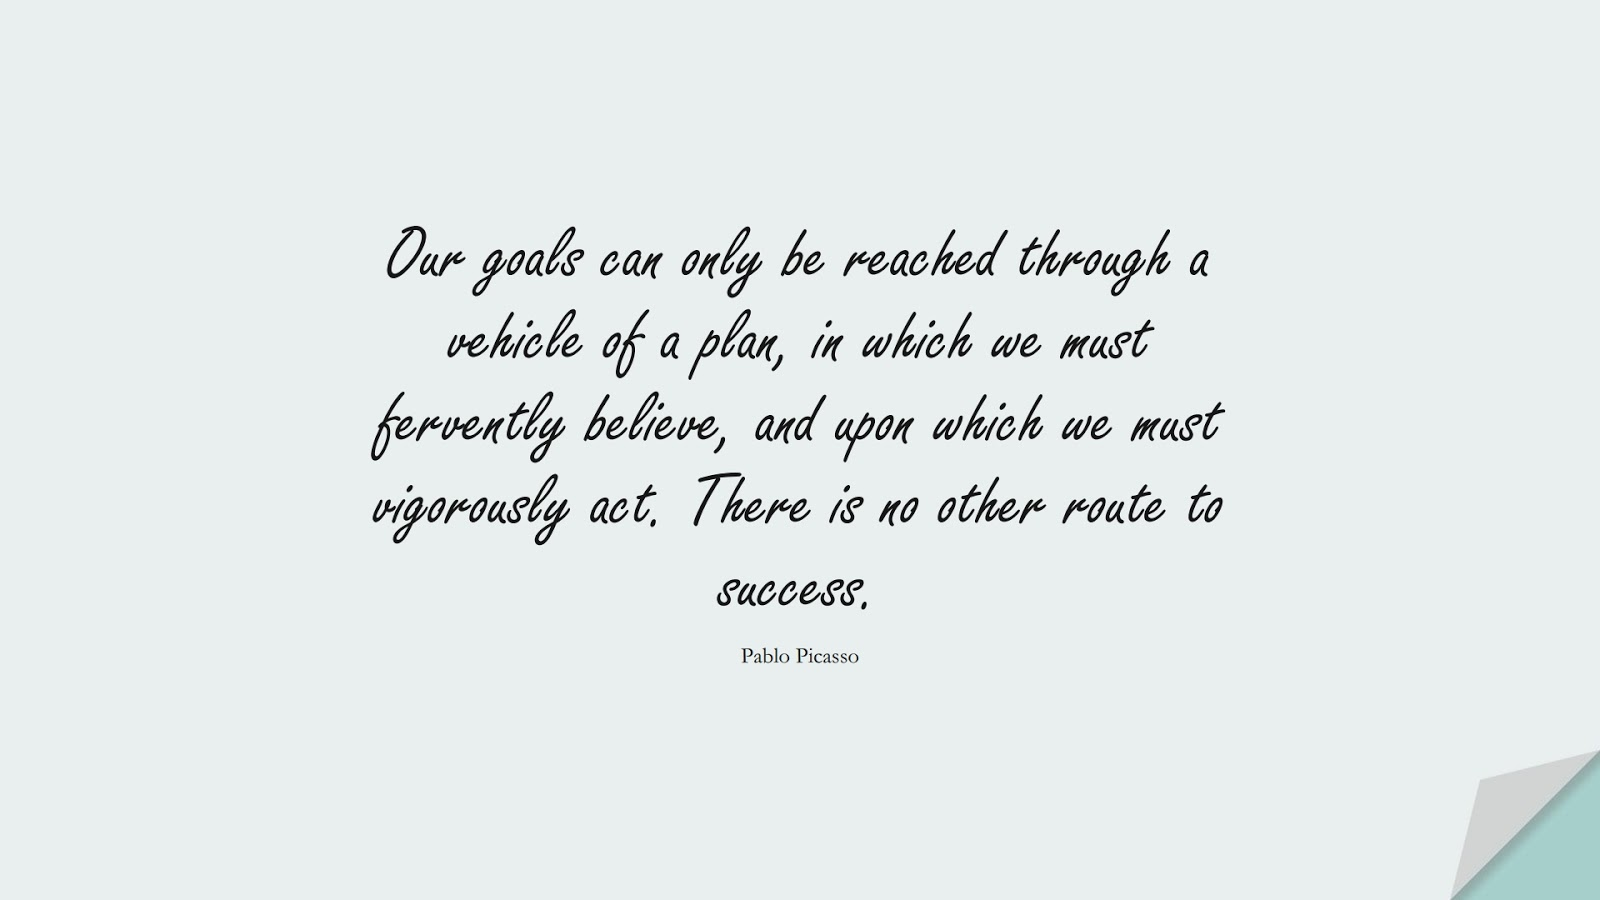 Our goals can only be reached through a vehicle of a plan, in which we must fervently believe, and upon which we must vigorously act. There is no other route to success. (Pablo Picasso);  #HardWorkQuotes